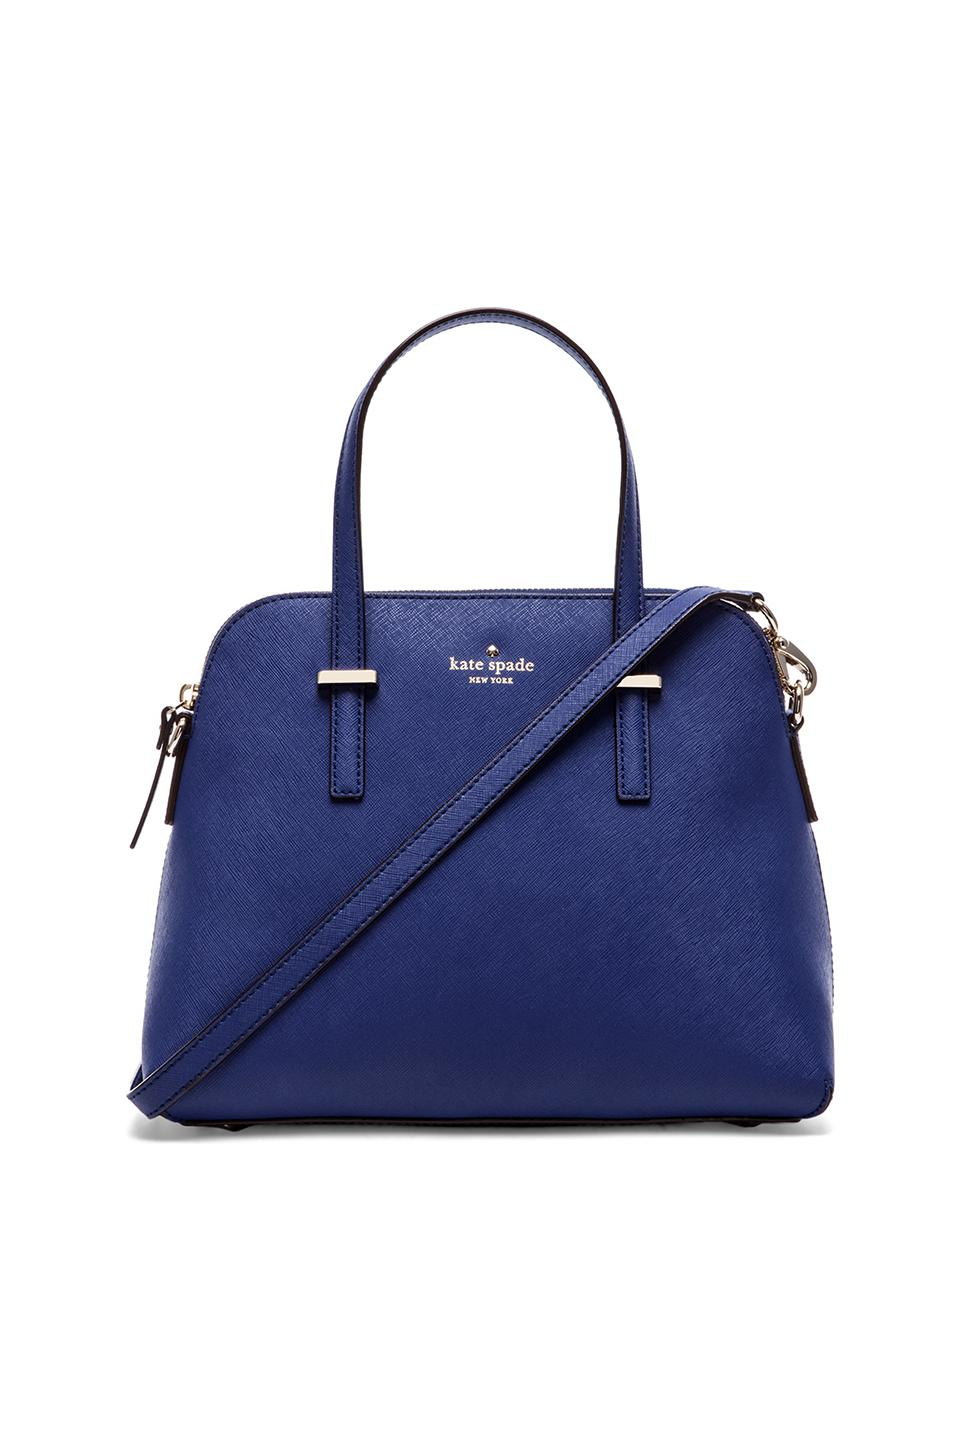 kate spade new york Maise Satchel in Emperor Blue